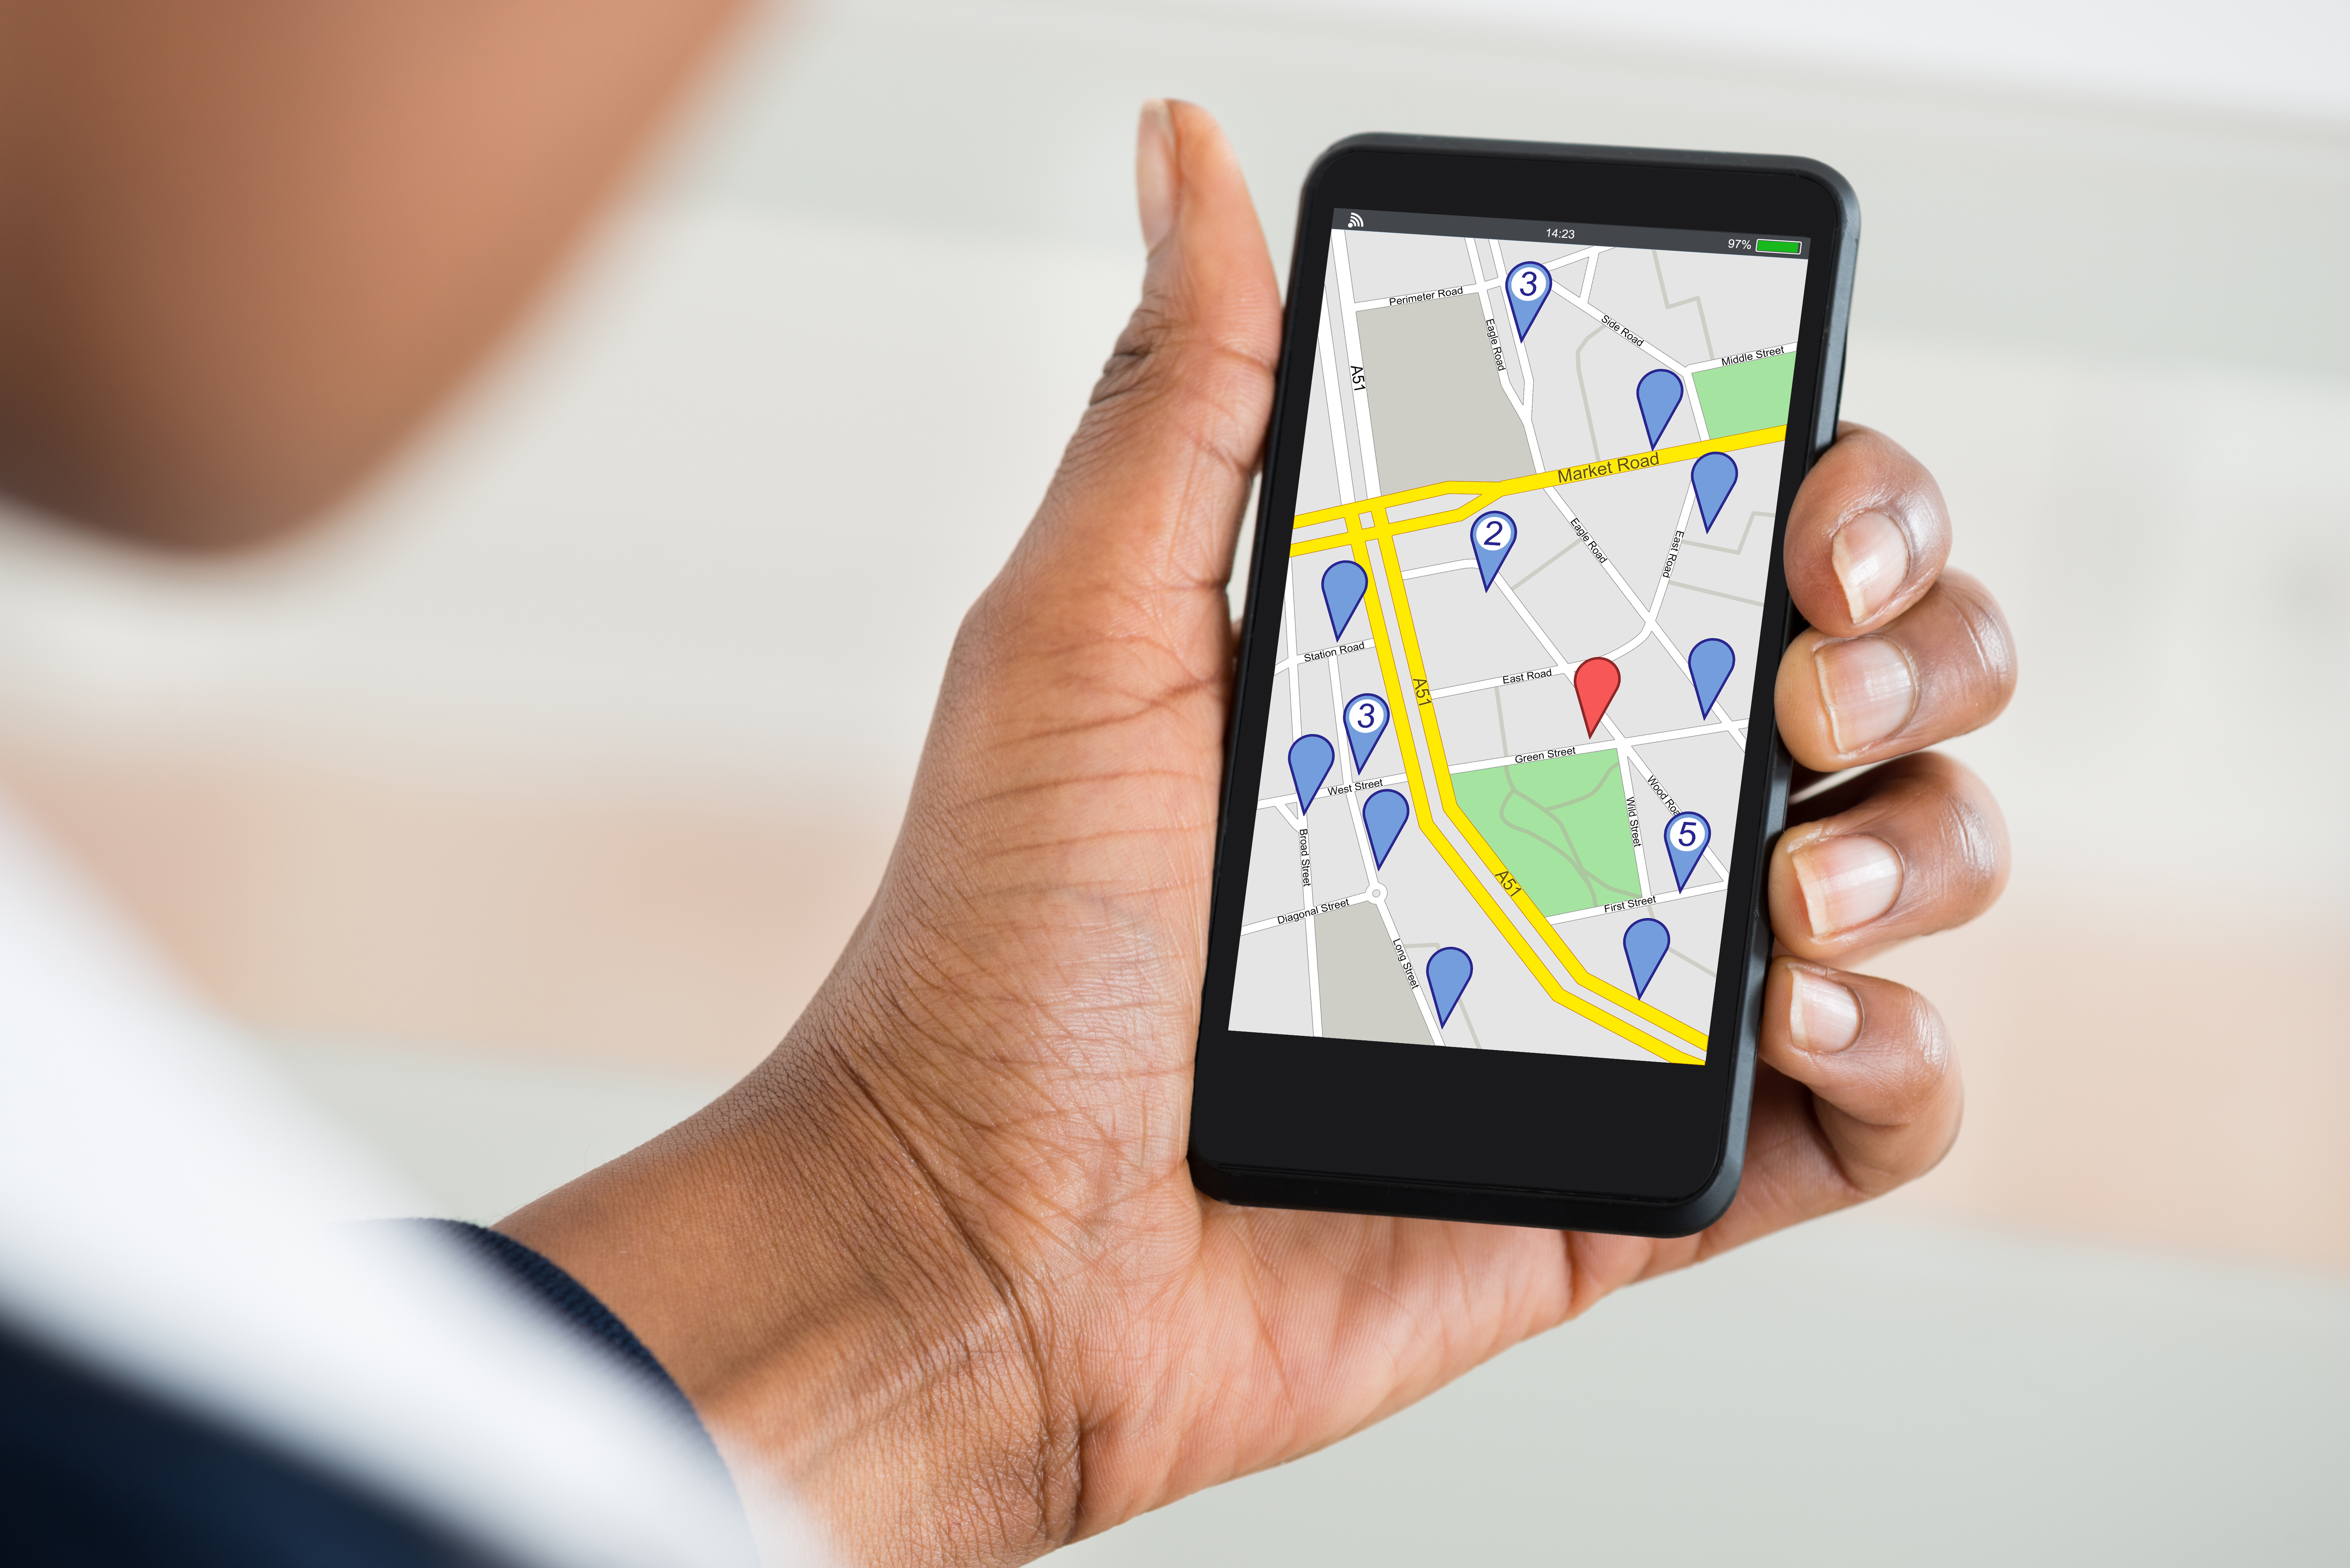 A hand holding a phone displaying a map and points of interest.